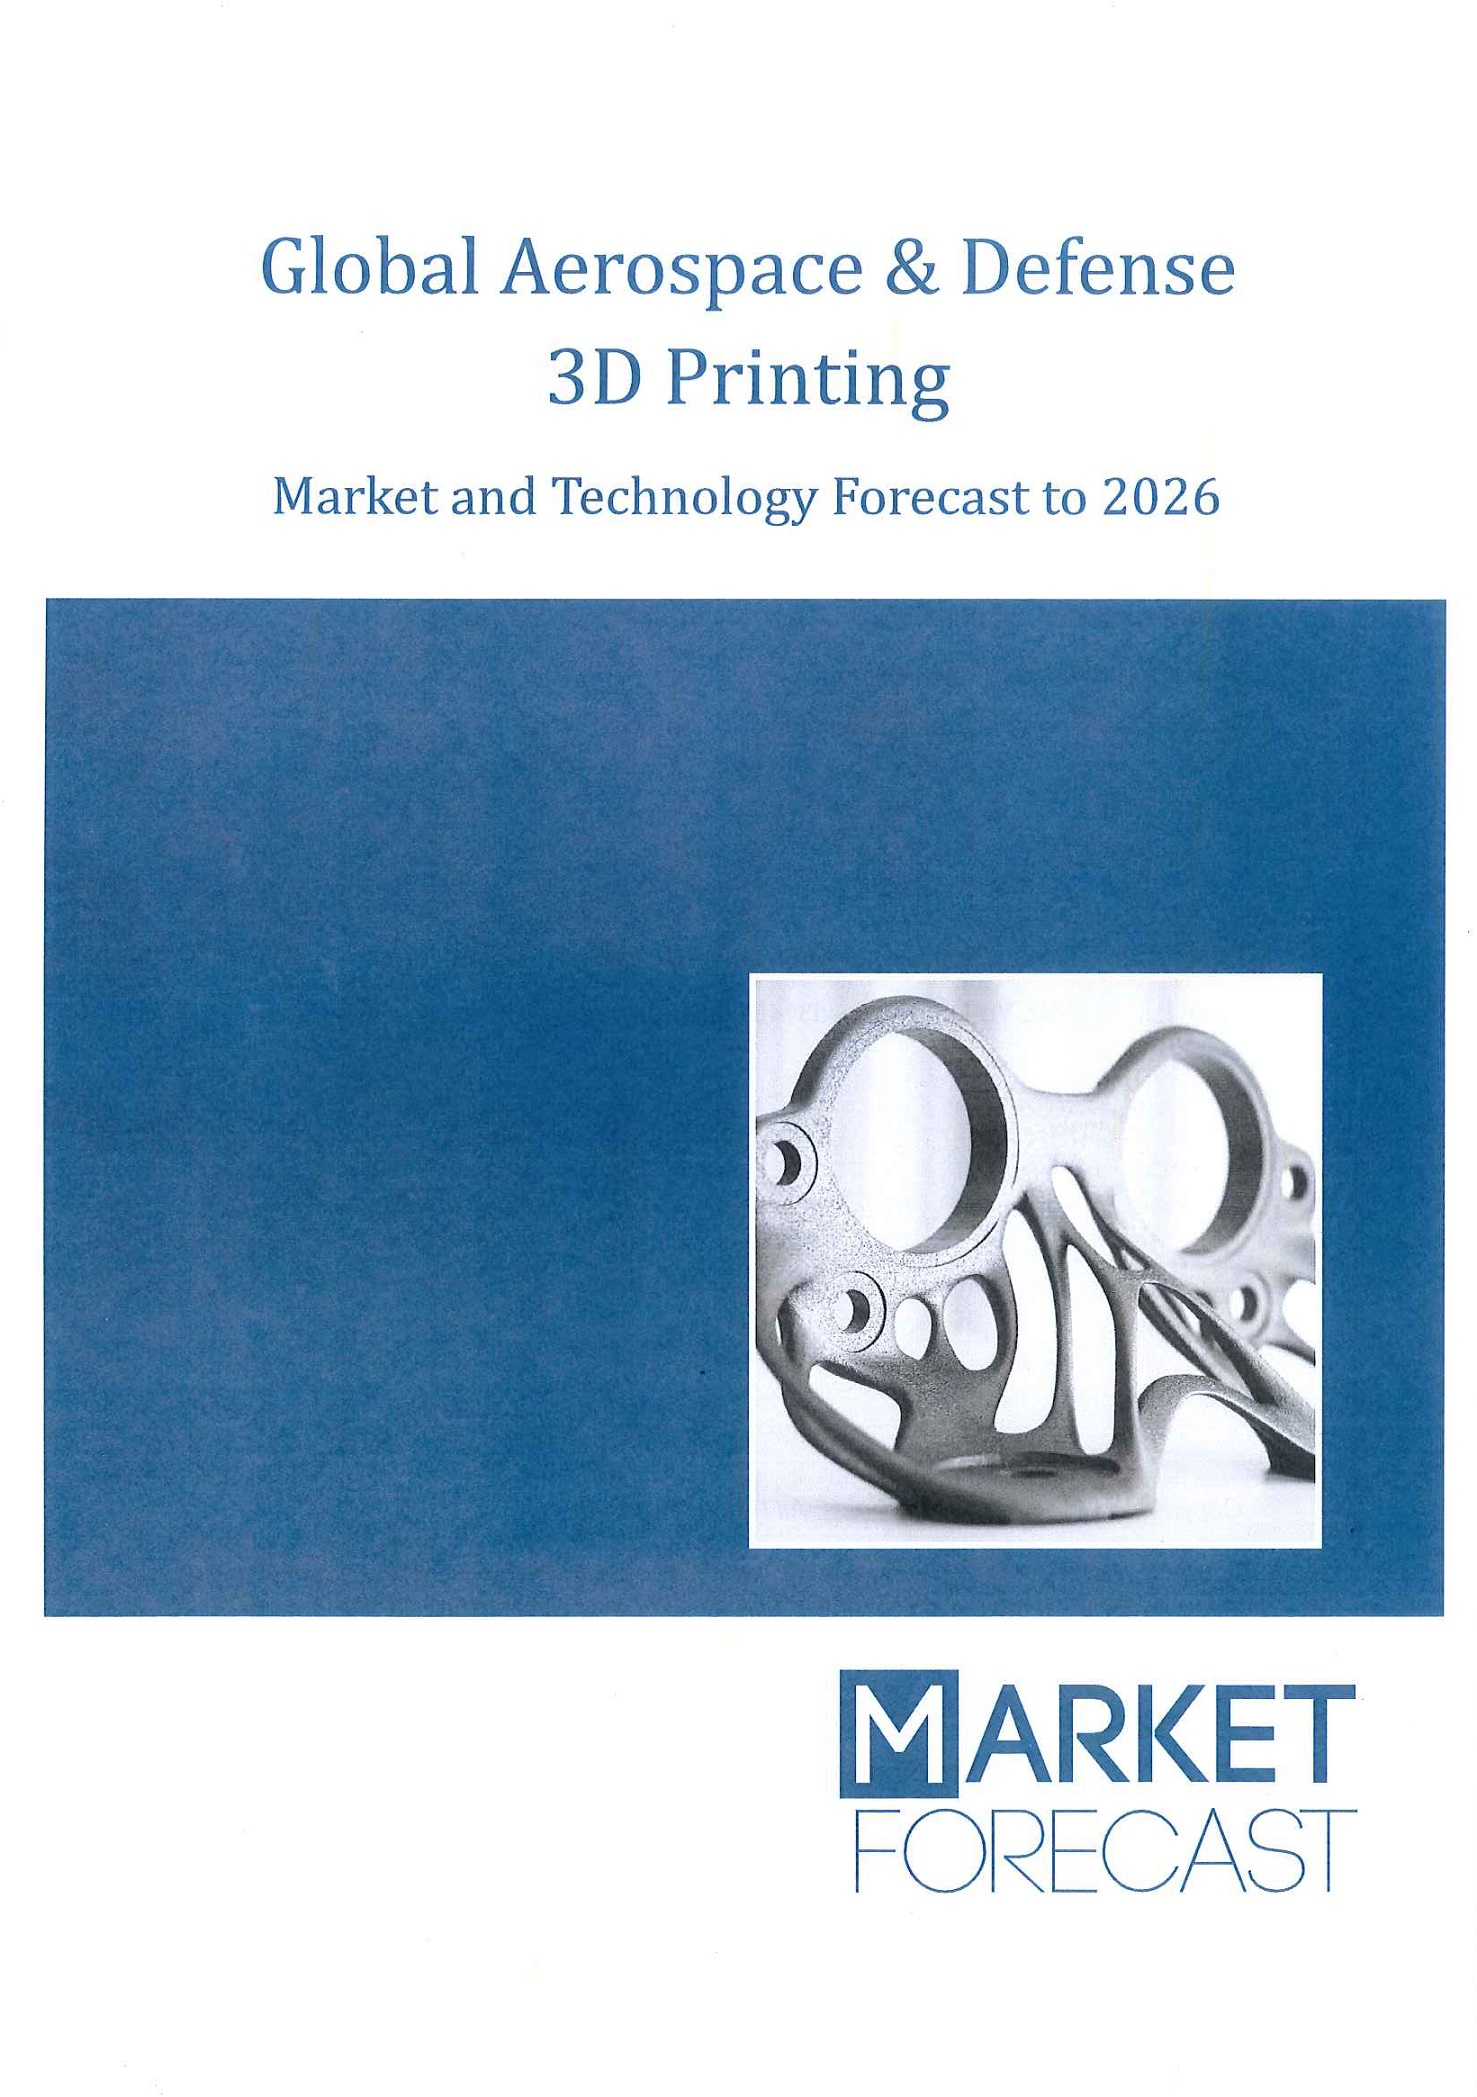 Global aerospace & defense 3D printing [e-book]:market and technology forecast to 2026